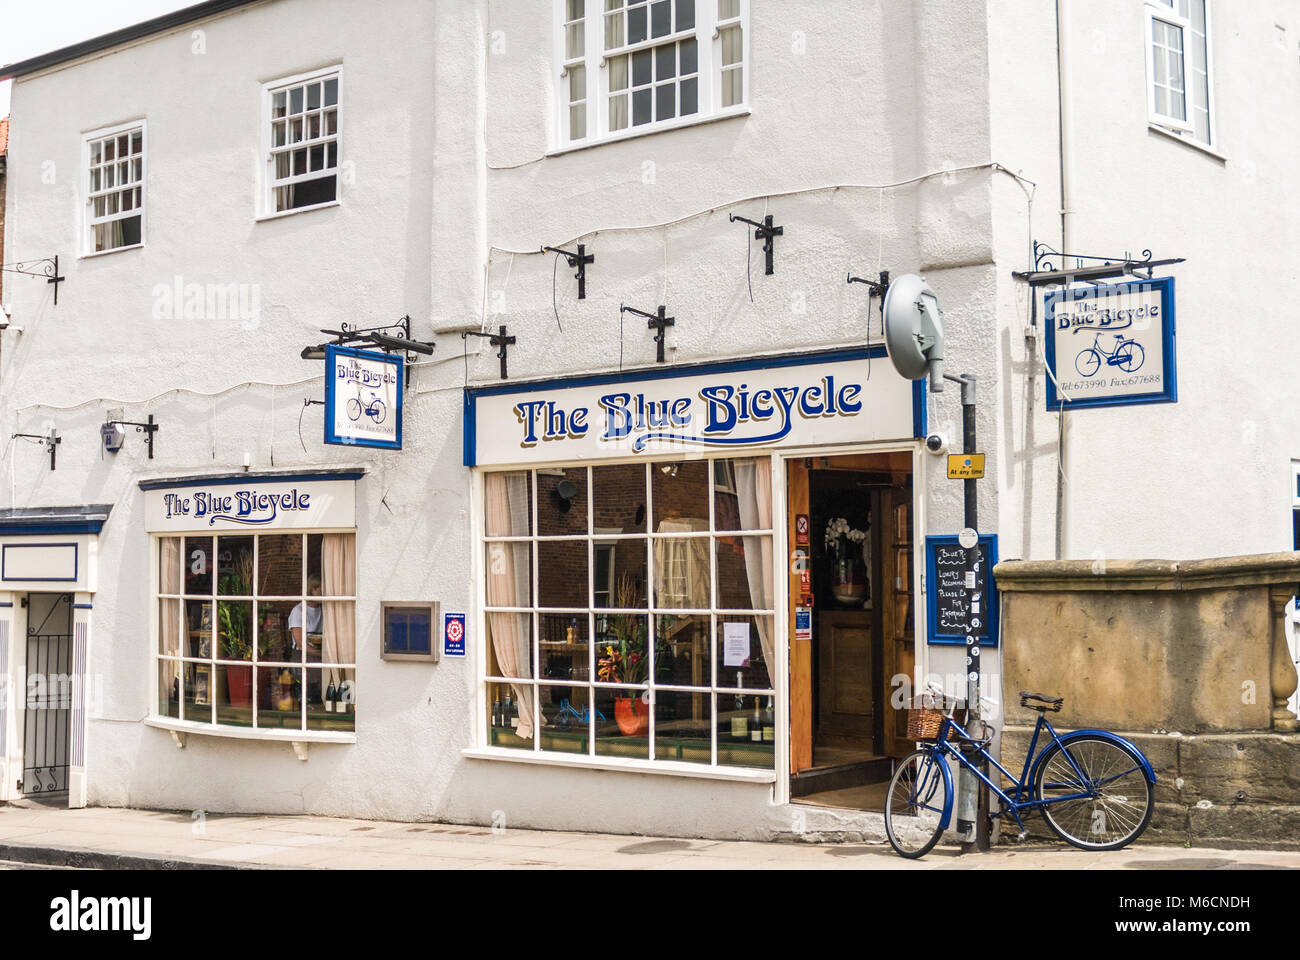 The Blue Bicycle restaurant, Fossgate, York - Stock Image